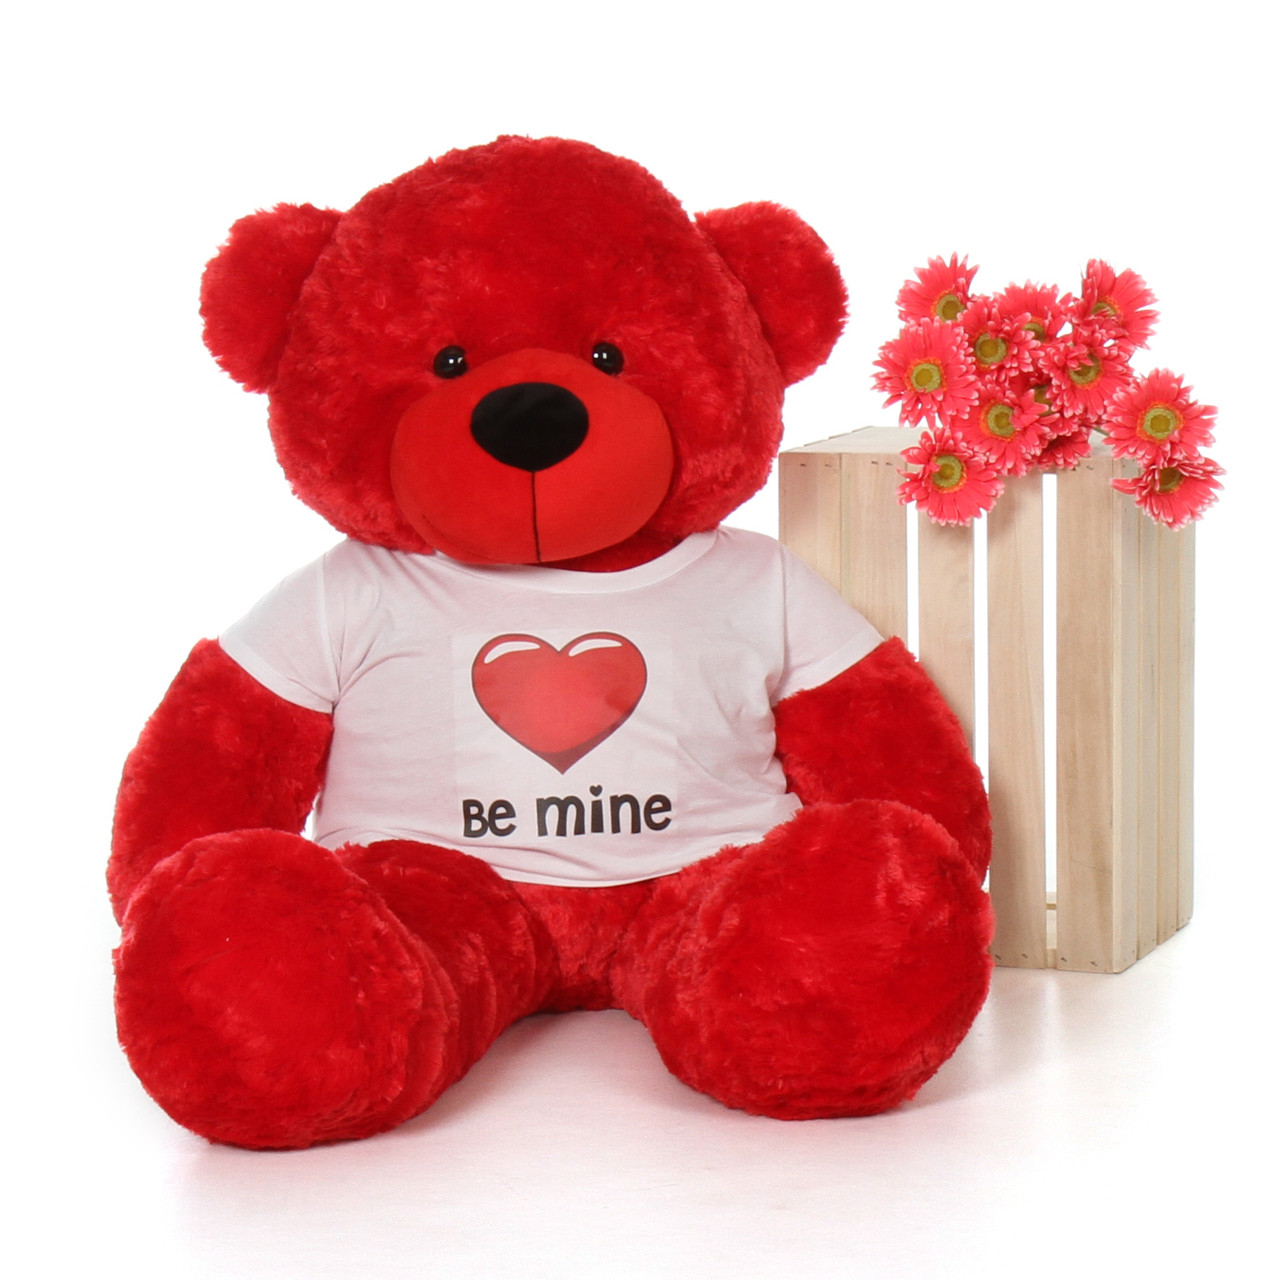 48in Red Bitsy Cuddles Giant Teddy with a Be Mine Valentine's Day T-Shirt